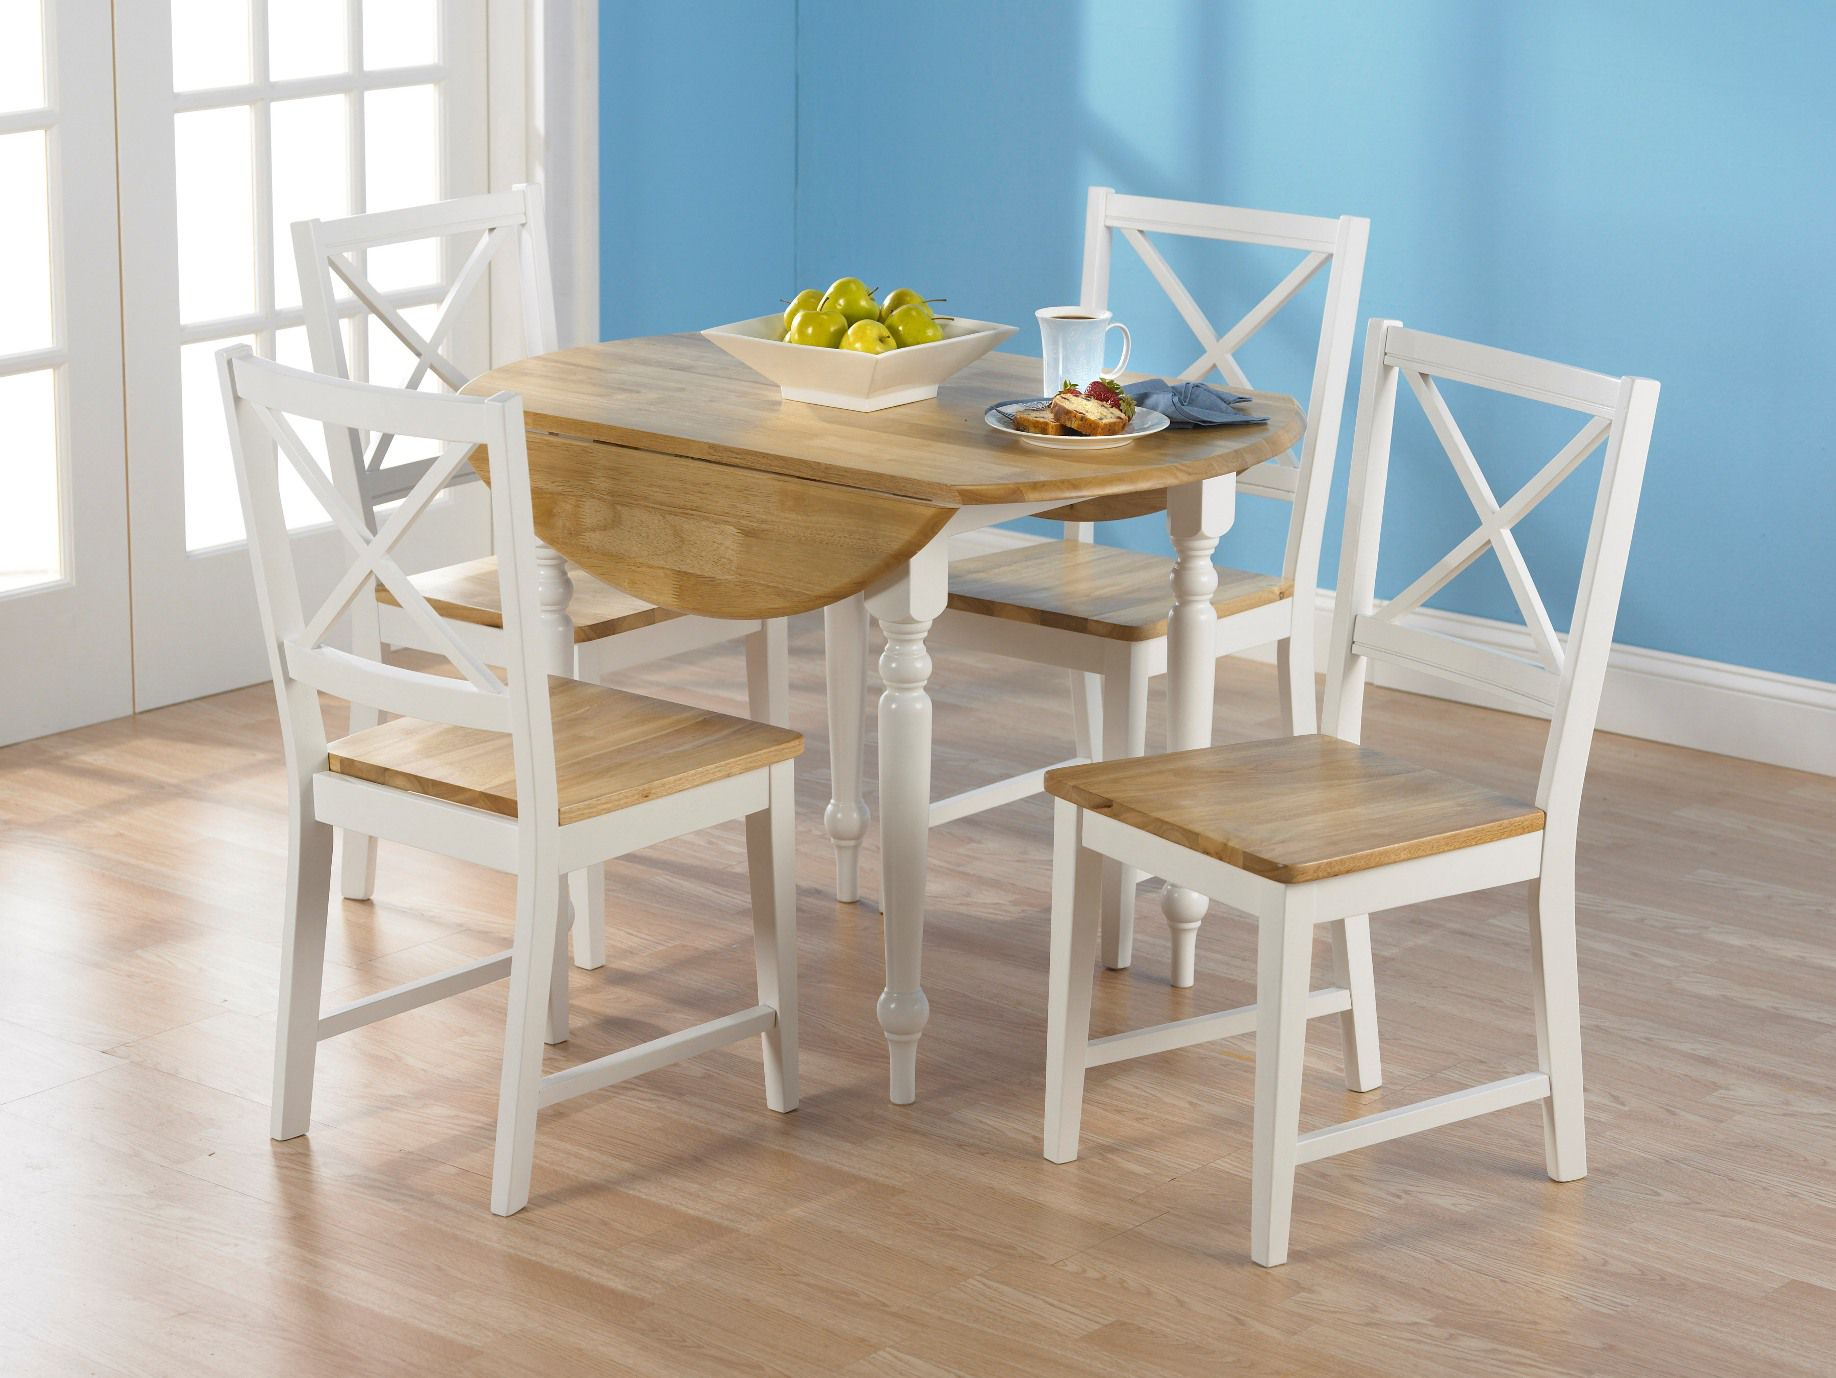 5 pc. Virginia Dining Set in white/natural